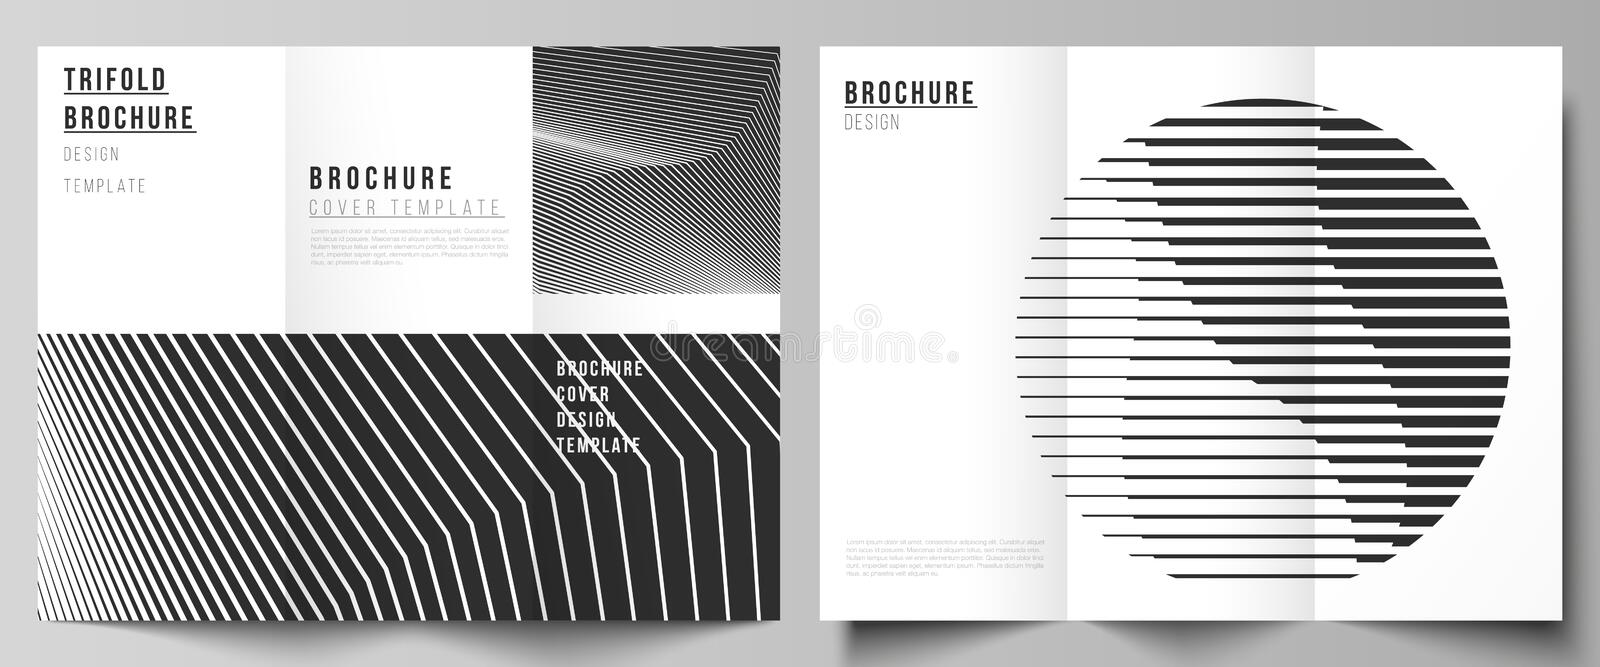 The minimal vector layouts. Modern creative covers design templates for trifold brochure or flyer. Geometric abstract. Background, futuristic science and royalty free illustration